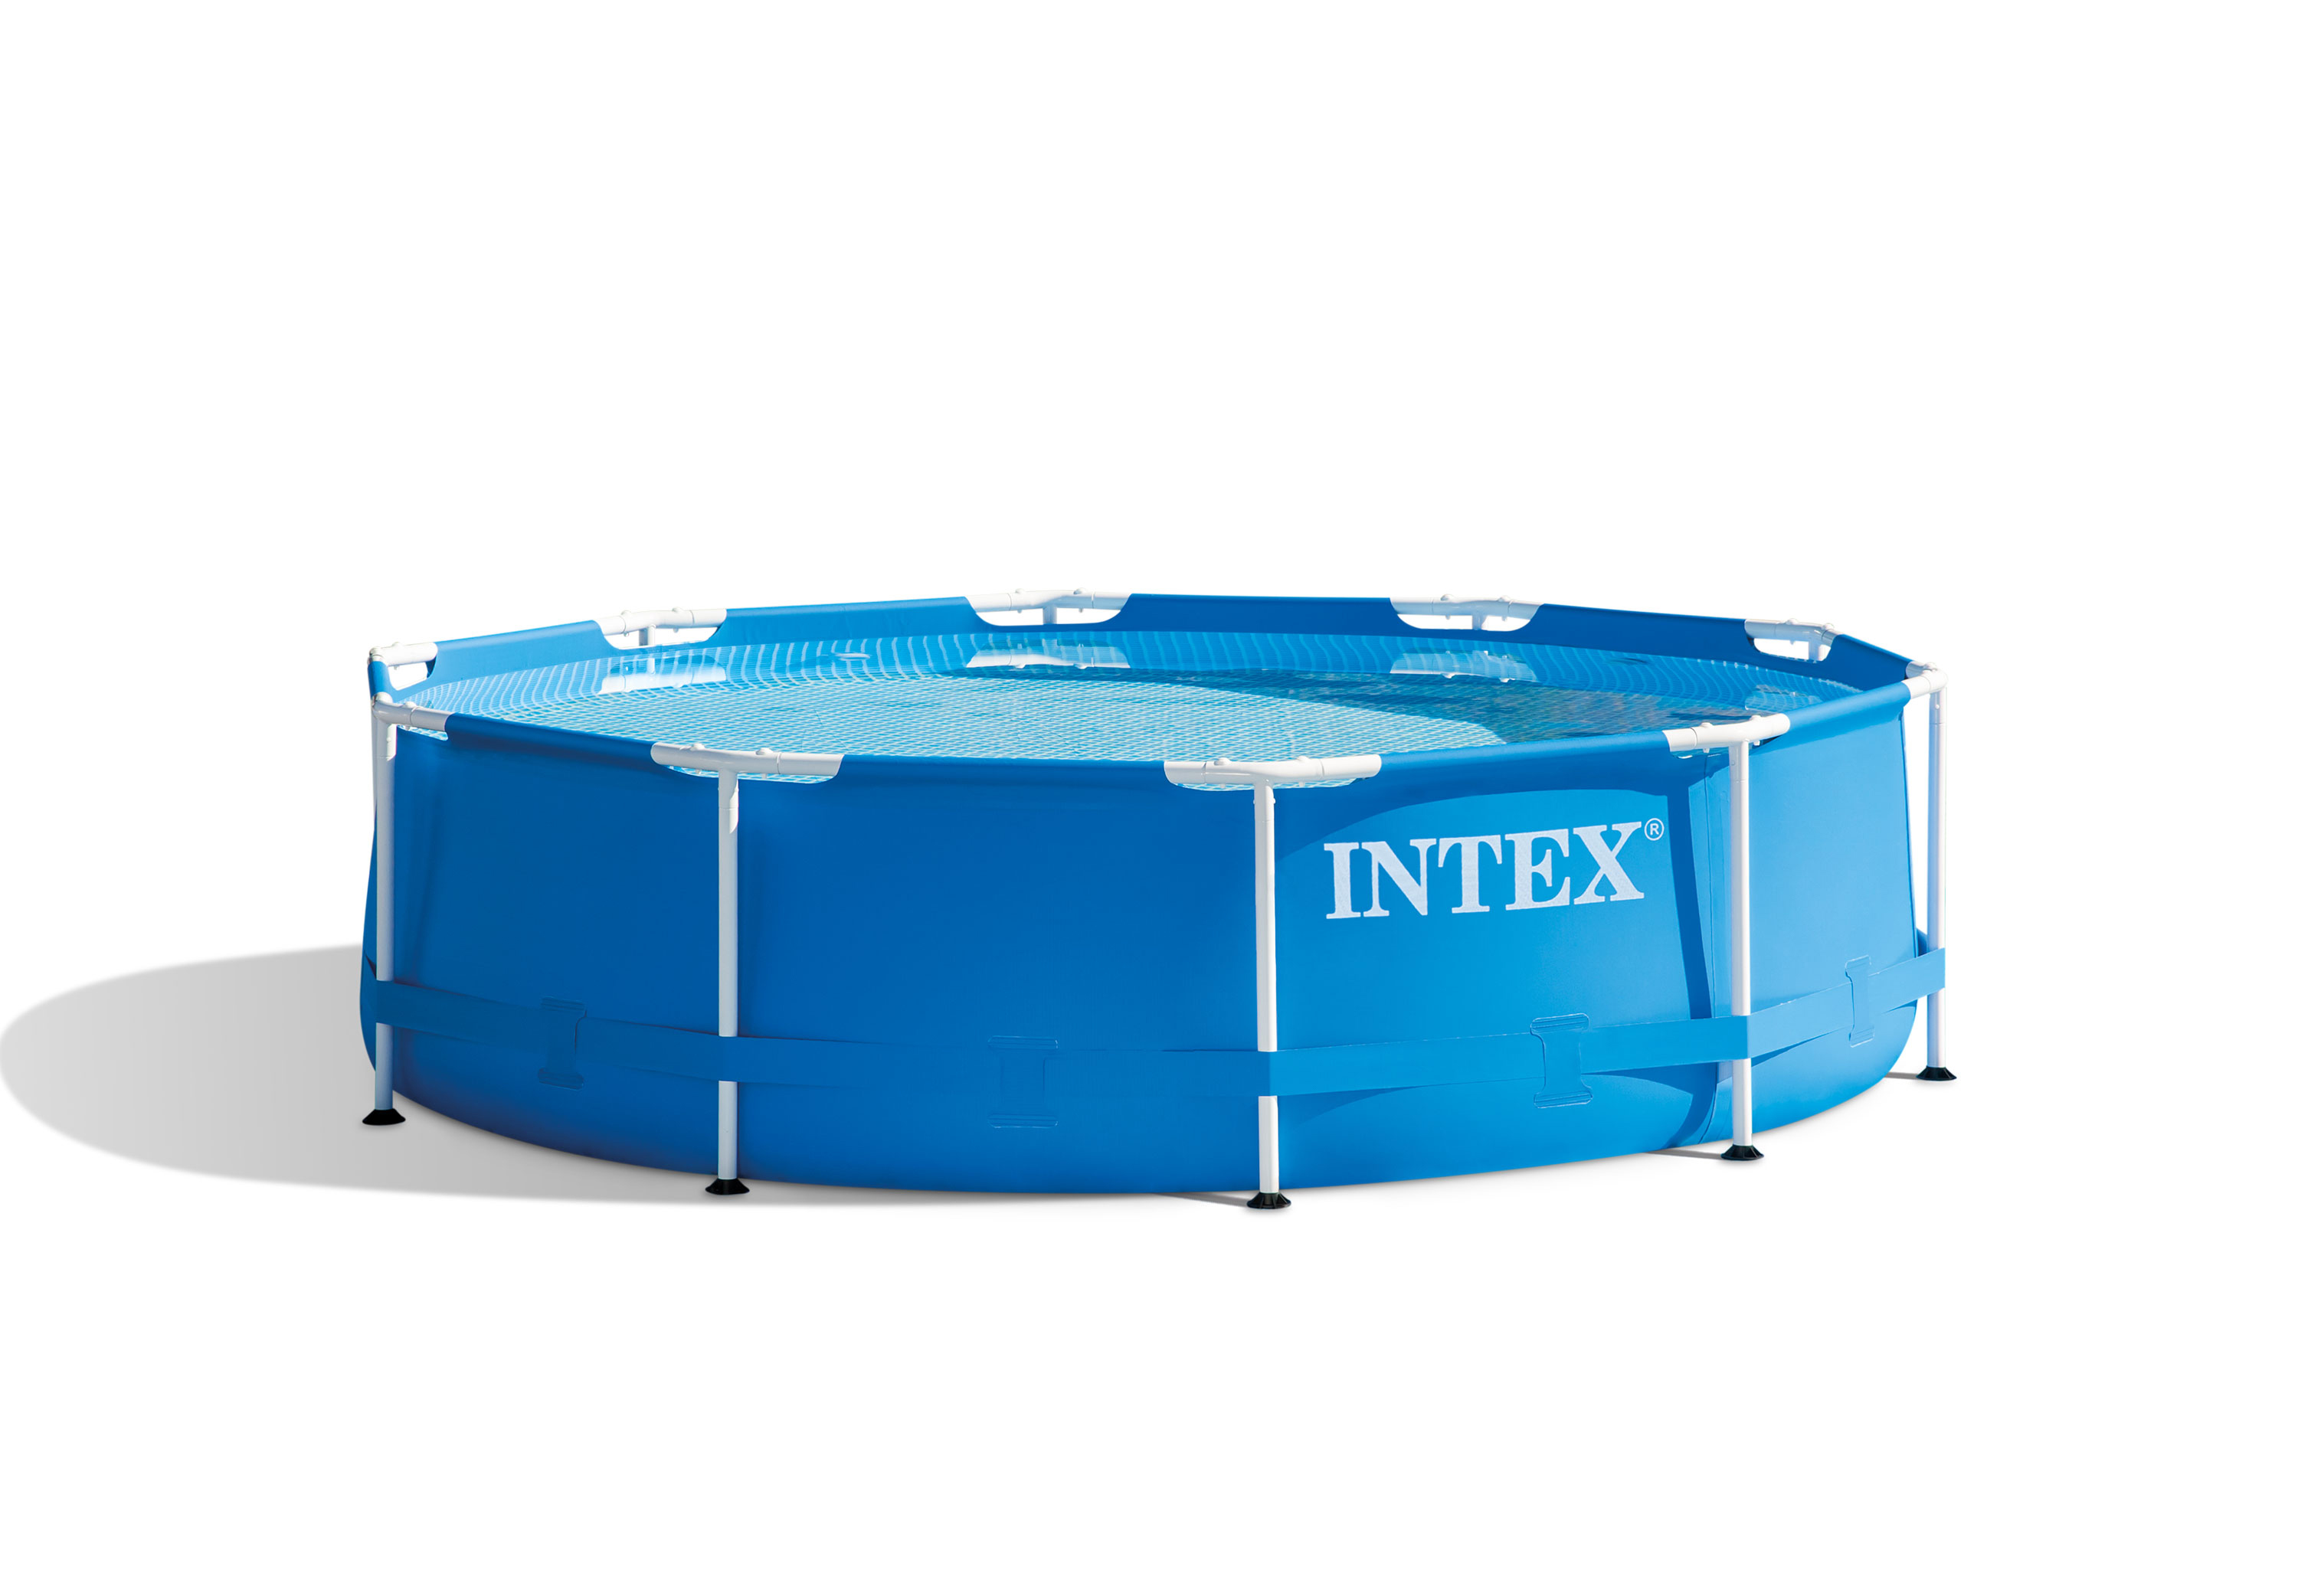 INTEX 10 ft x 30 in Metal Frame Round Pool Set